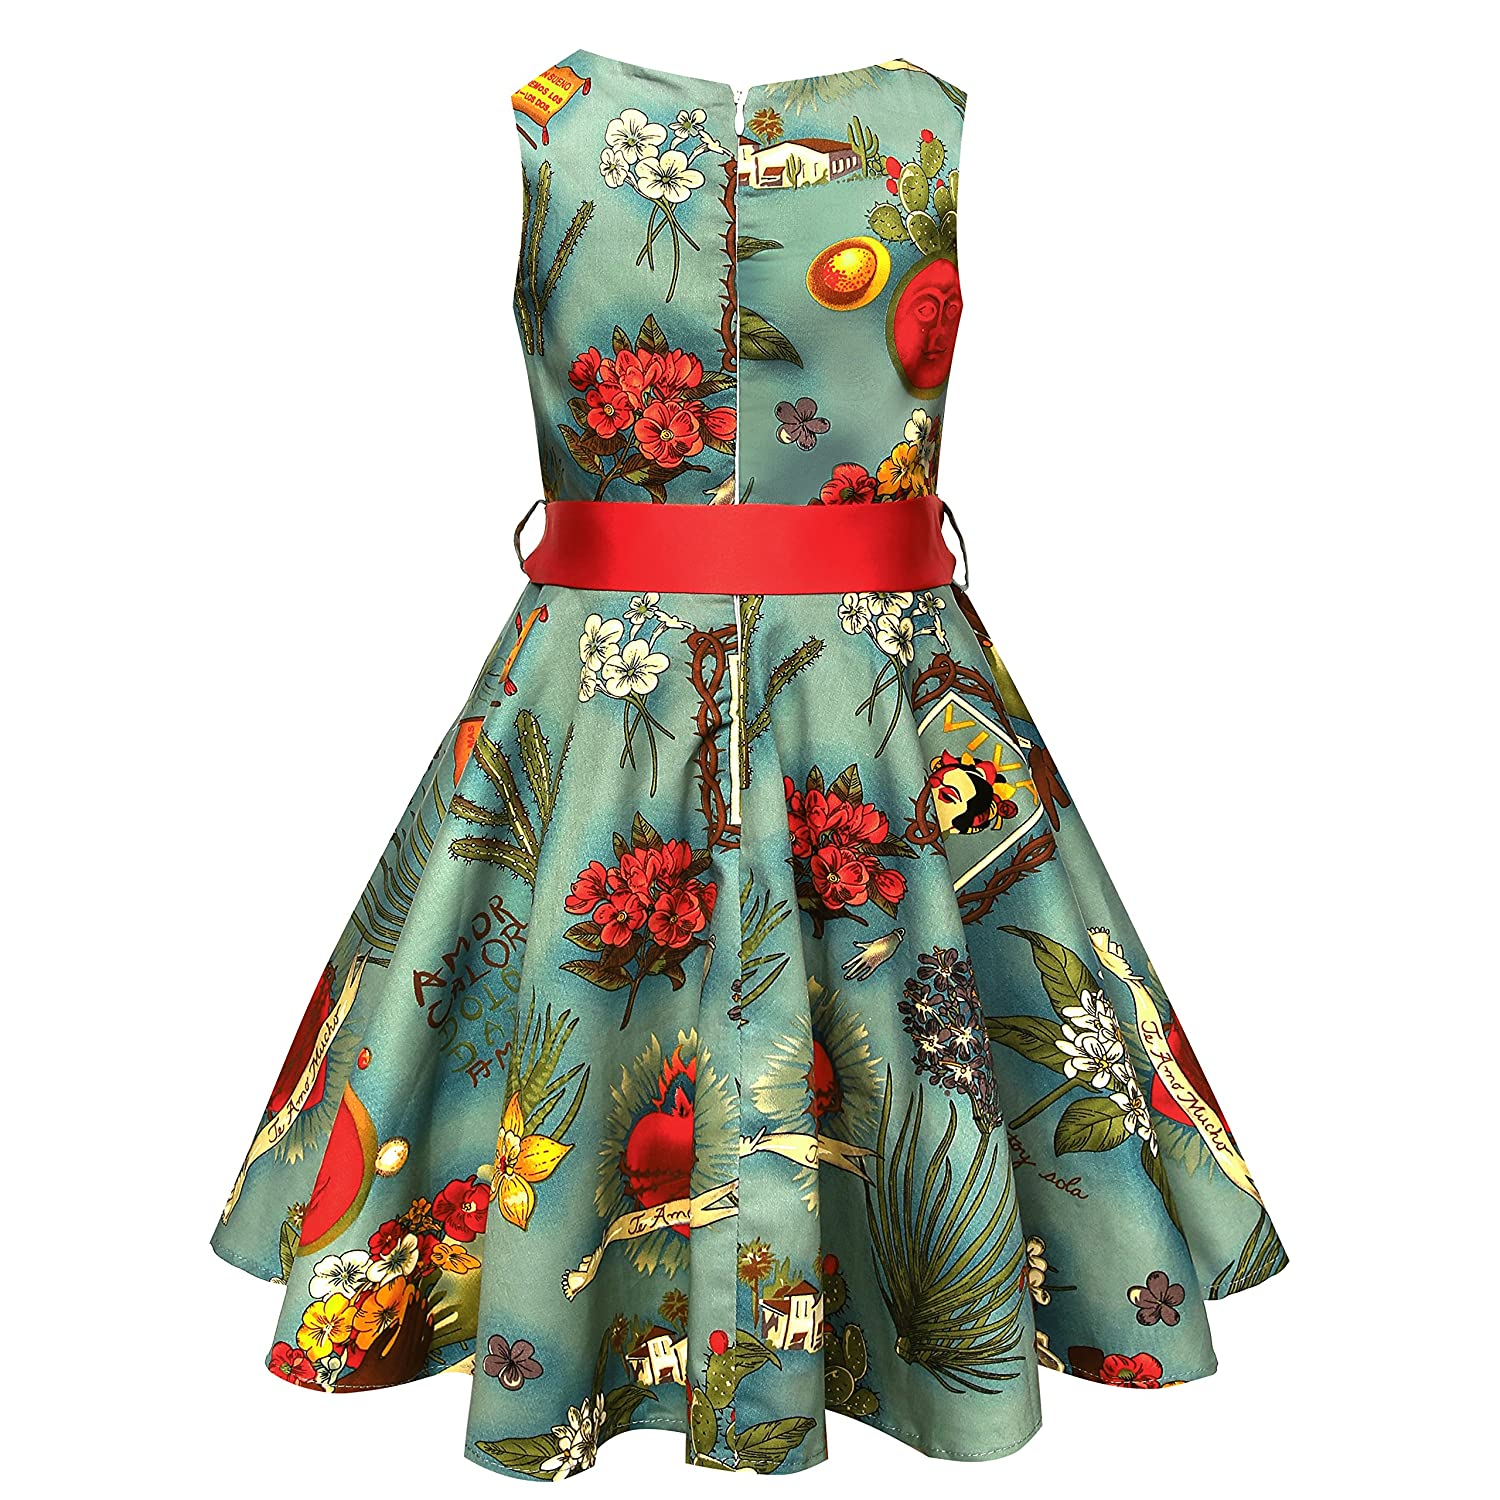 11a115d3bc2 Amazon.com  50s Vintage Swing Girls Dresses for Casual Party Audrey Hepburn  Retro Dresses for Girls  Clothing